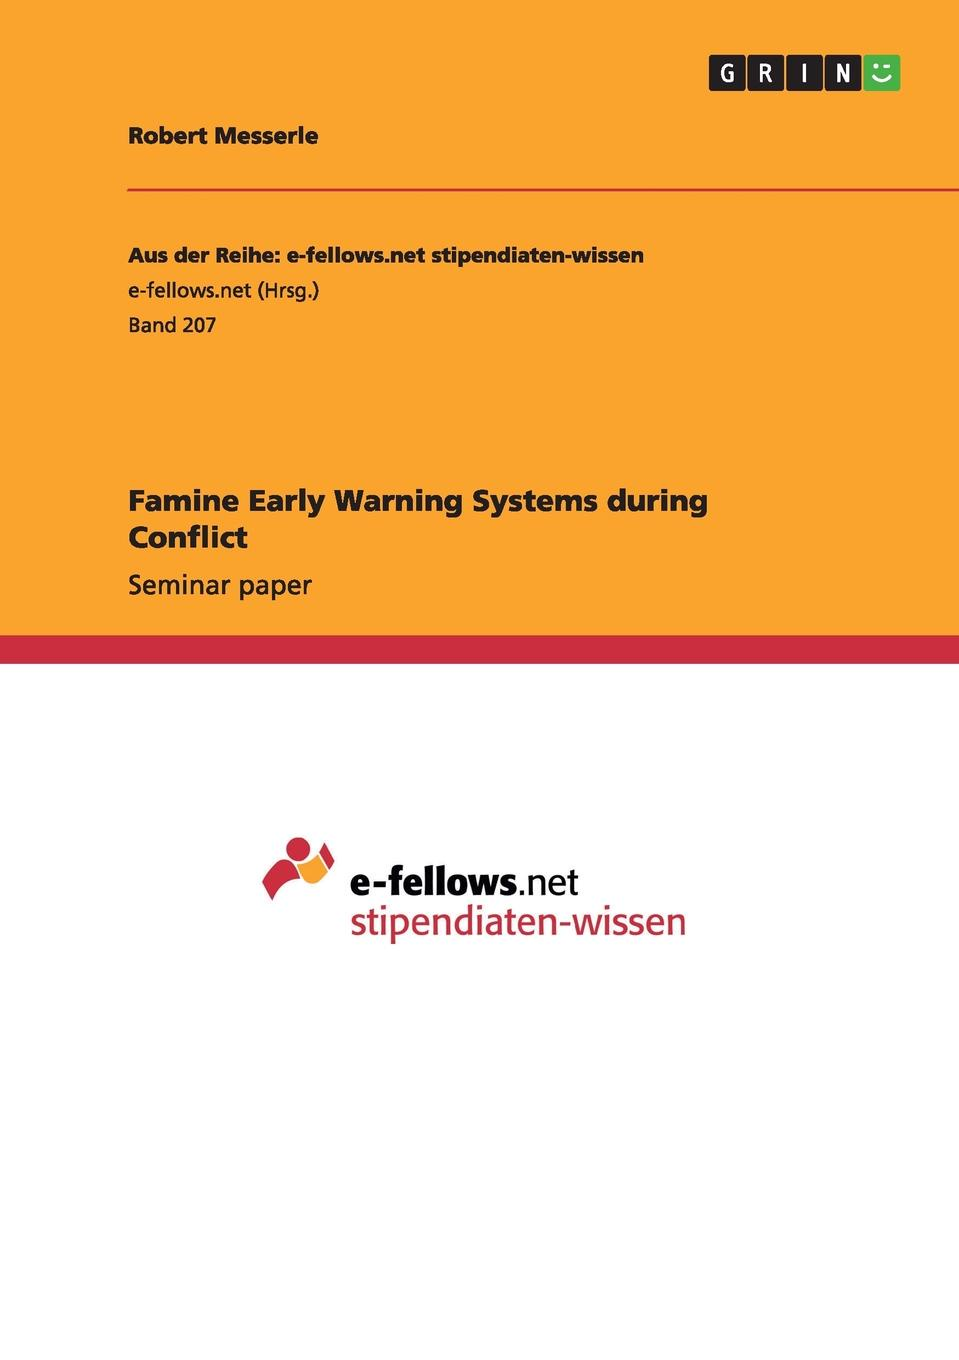 Robert Messerle Famine Early Warning Systems during Conflict wayne martindale global food security and supply